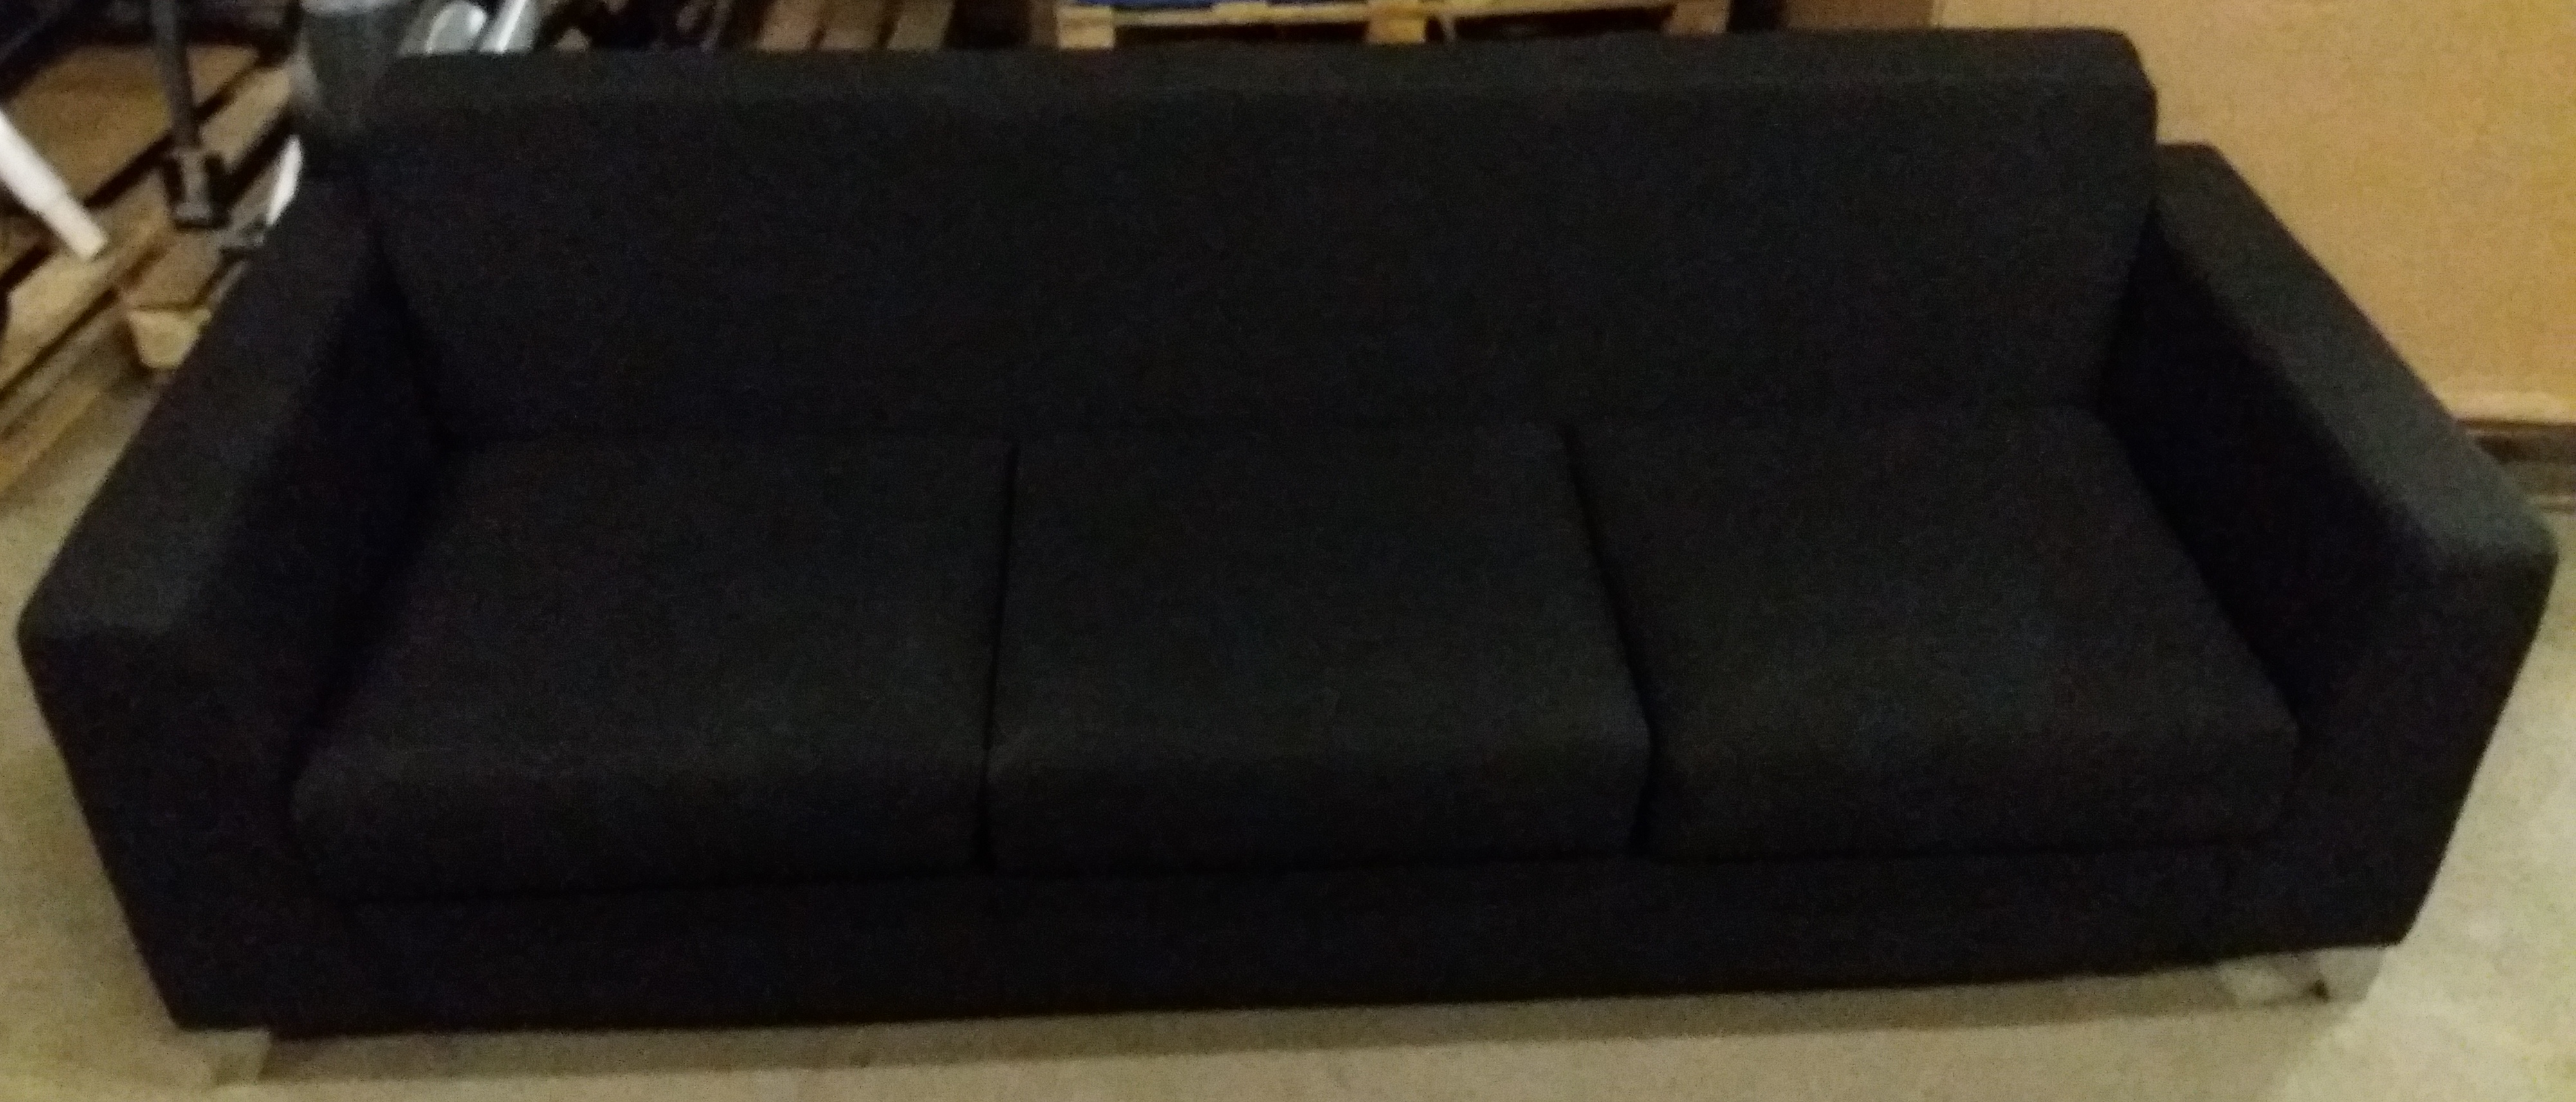 Lot 14 - 3 Seat Synergy Black Fabric Sofa